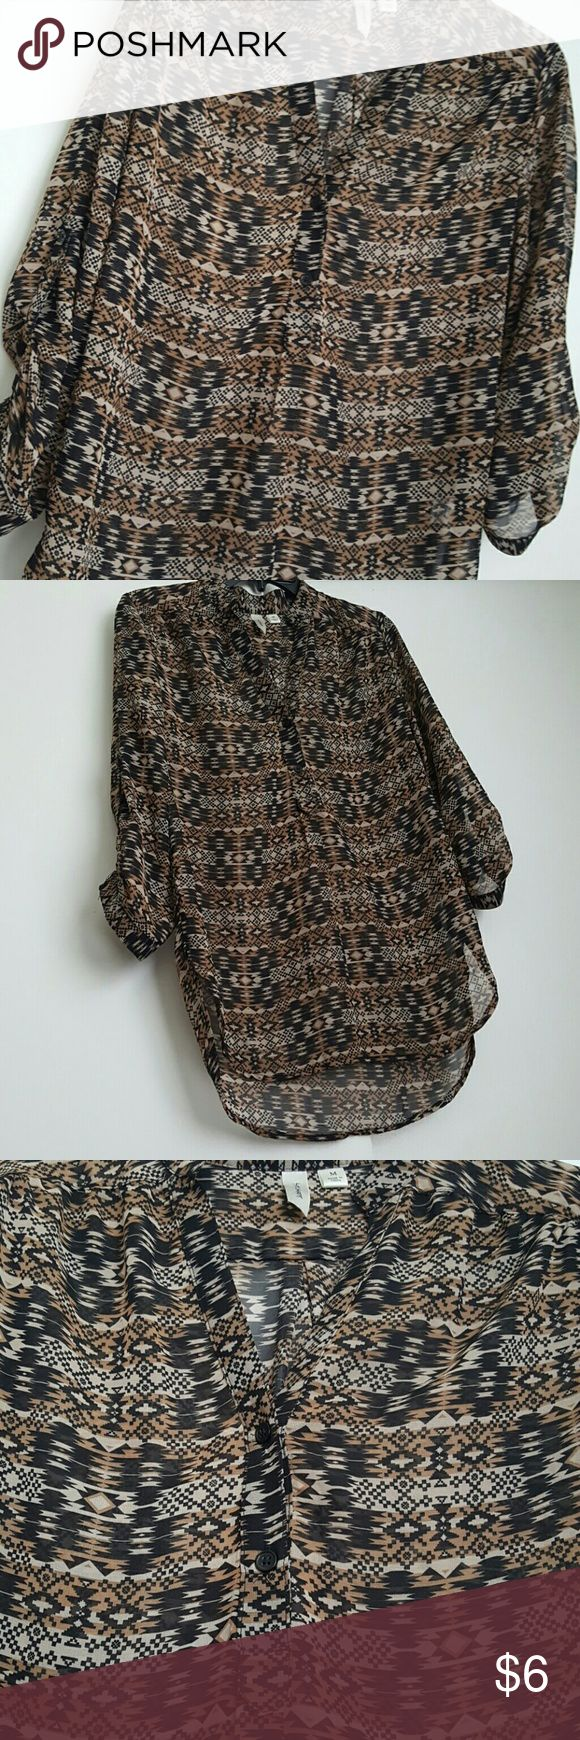 Aztec blouse -Aztec print sheer chiffon style blouse -Long sleeve but you can button it up to make it 3/4 sleeve -Size Medium  -Color is Black, Brown, & Tan -Brand is Tacera  -100% Polyester   **All items come from a smoke free and pet free home  **I do my best to do same day shipping for all purchases made by 3:30pm CST if not I will ship the next day.  Feel free to send offers and check out my other items for bundle discounts :)  ?Have a wonderful day? Tacera Tops Blouses